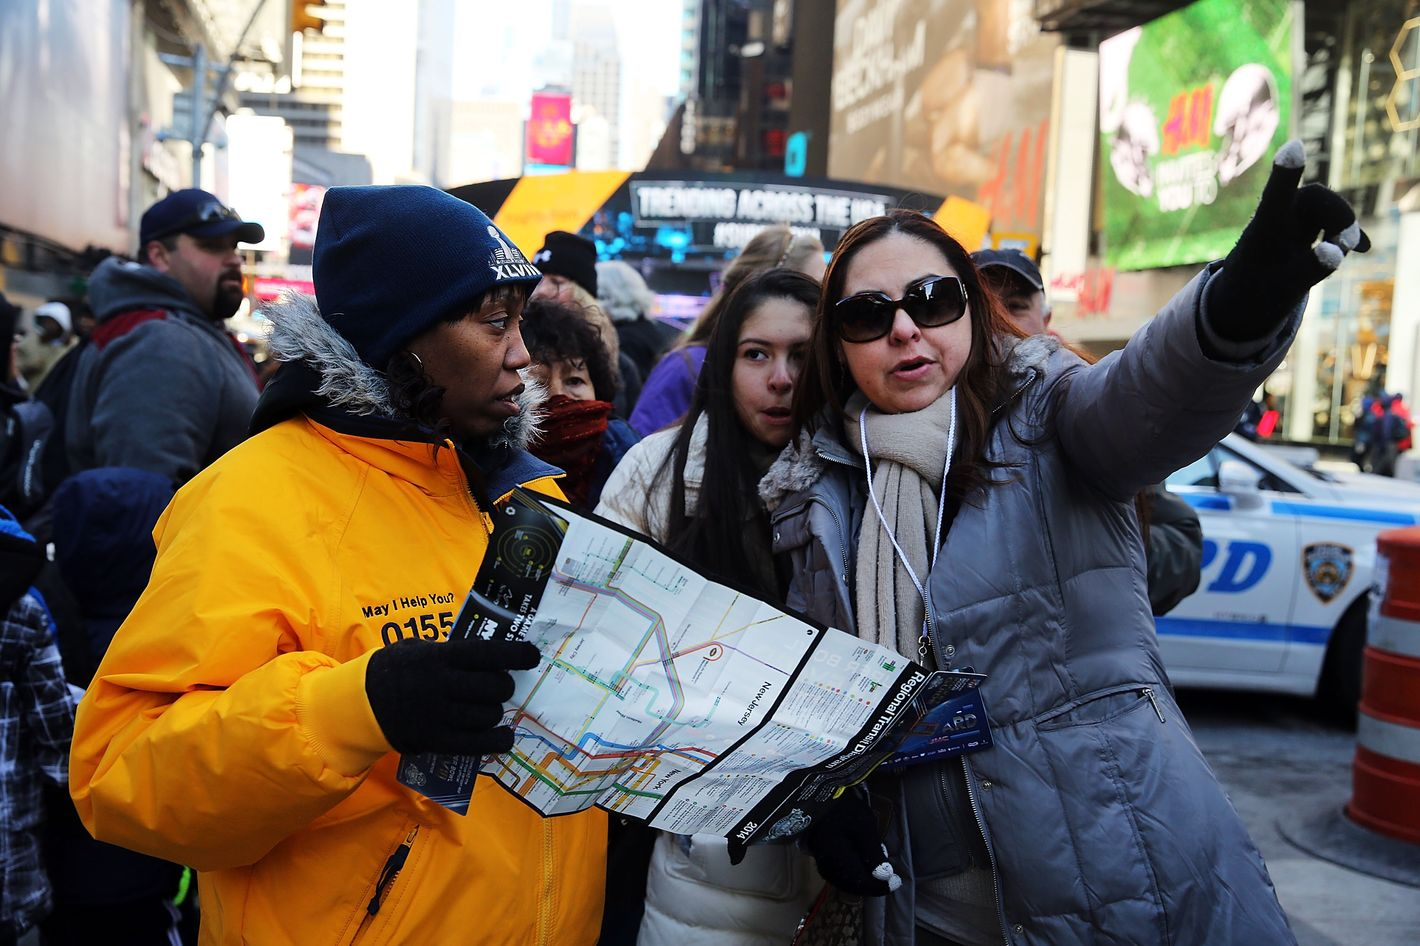 NEW YORK, NY - JANUARY 30:  Tourists ask for directions as football fans gather along Broadway in Times Square which has temporarily been re-named Super Bowl Boulevard as the city prepares for Sunday's game between the Denver Broncos and Seattle Seahawks on January 30, 2014 in New York City. Thousands of tourists have descended on Manhattan to soak up the pre game atmosphere which includes a toboggan ride, autograph booths and a penalty kick cage. Security is tight throughout the city with thousands of officers patrolling on foot and in vehicles.  (Photo by Spencer Platt/Getty Images)